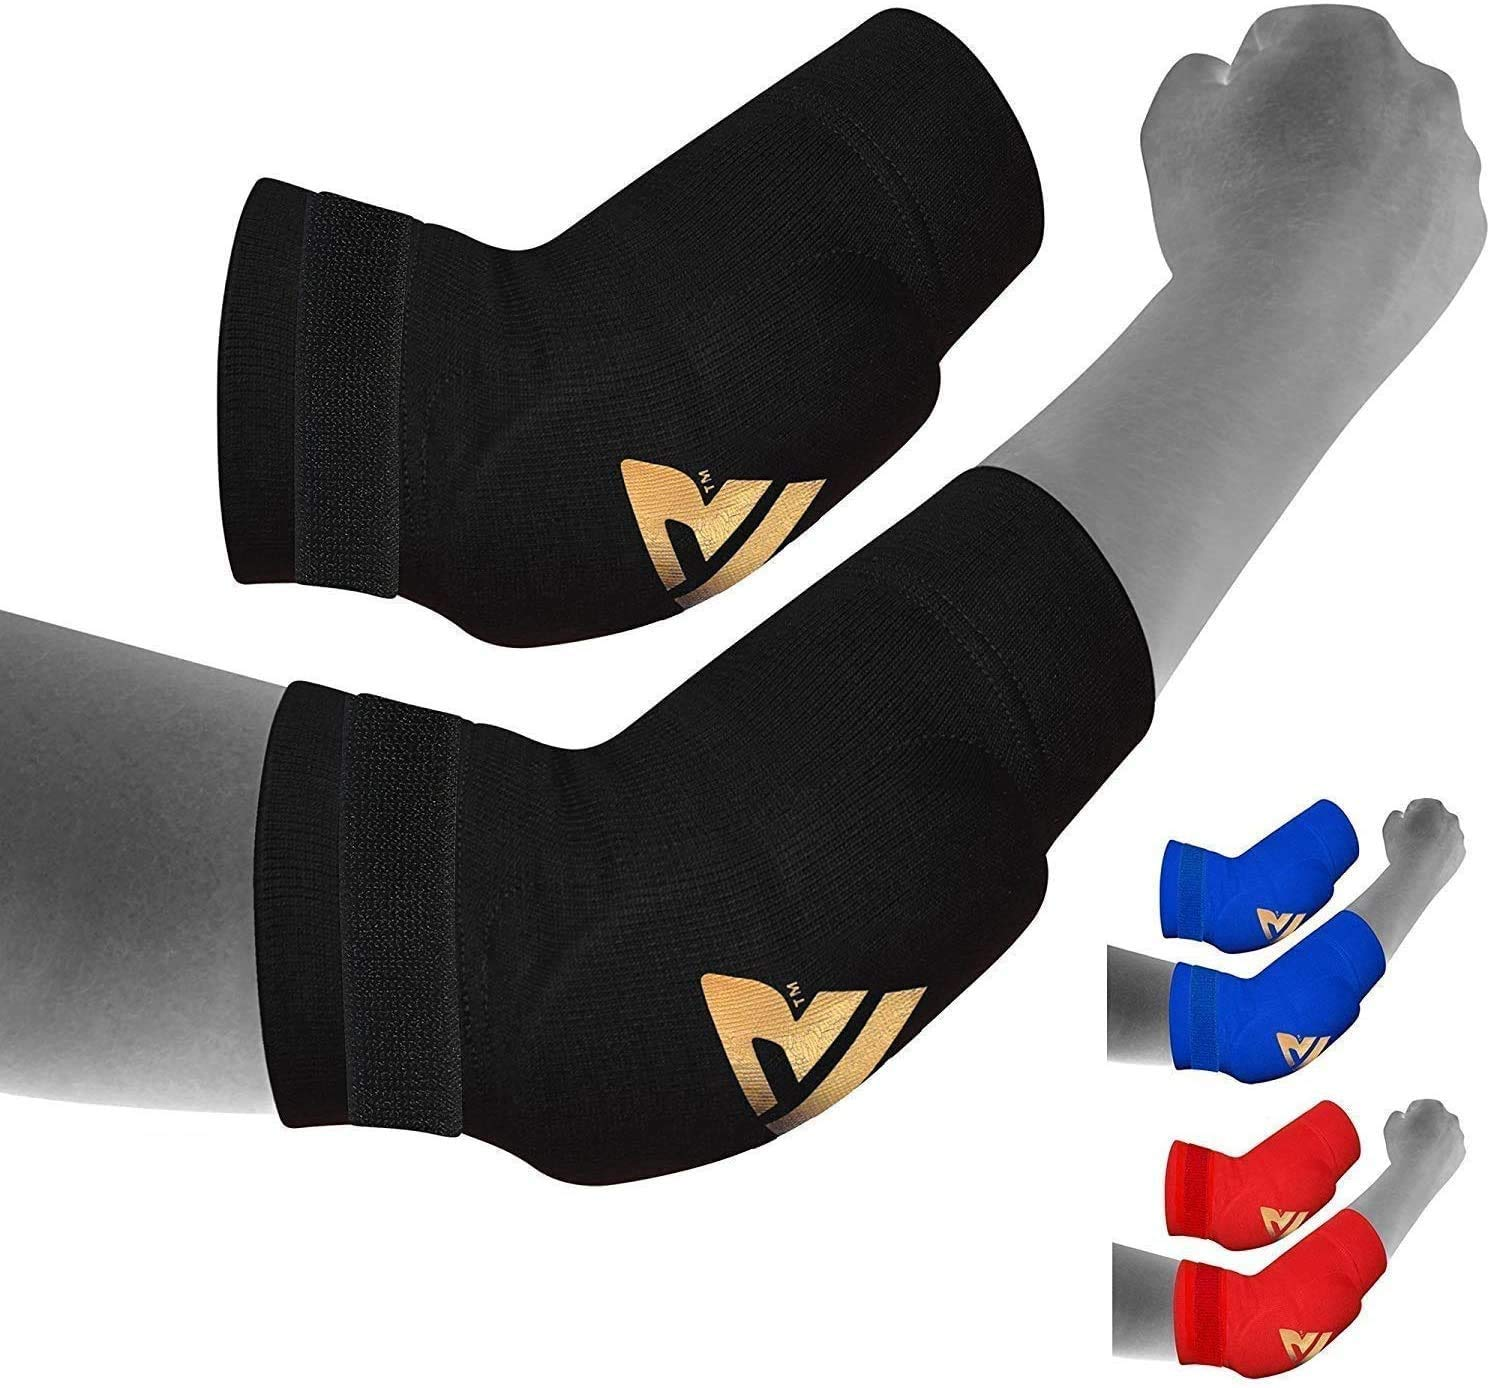 RDX MMA Elbow Support Brace Sleeve Pads Guard Bandage Elasticated Shield Protector,Black,Large, Large, Black: Industrial & Scientific